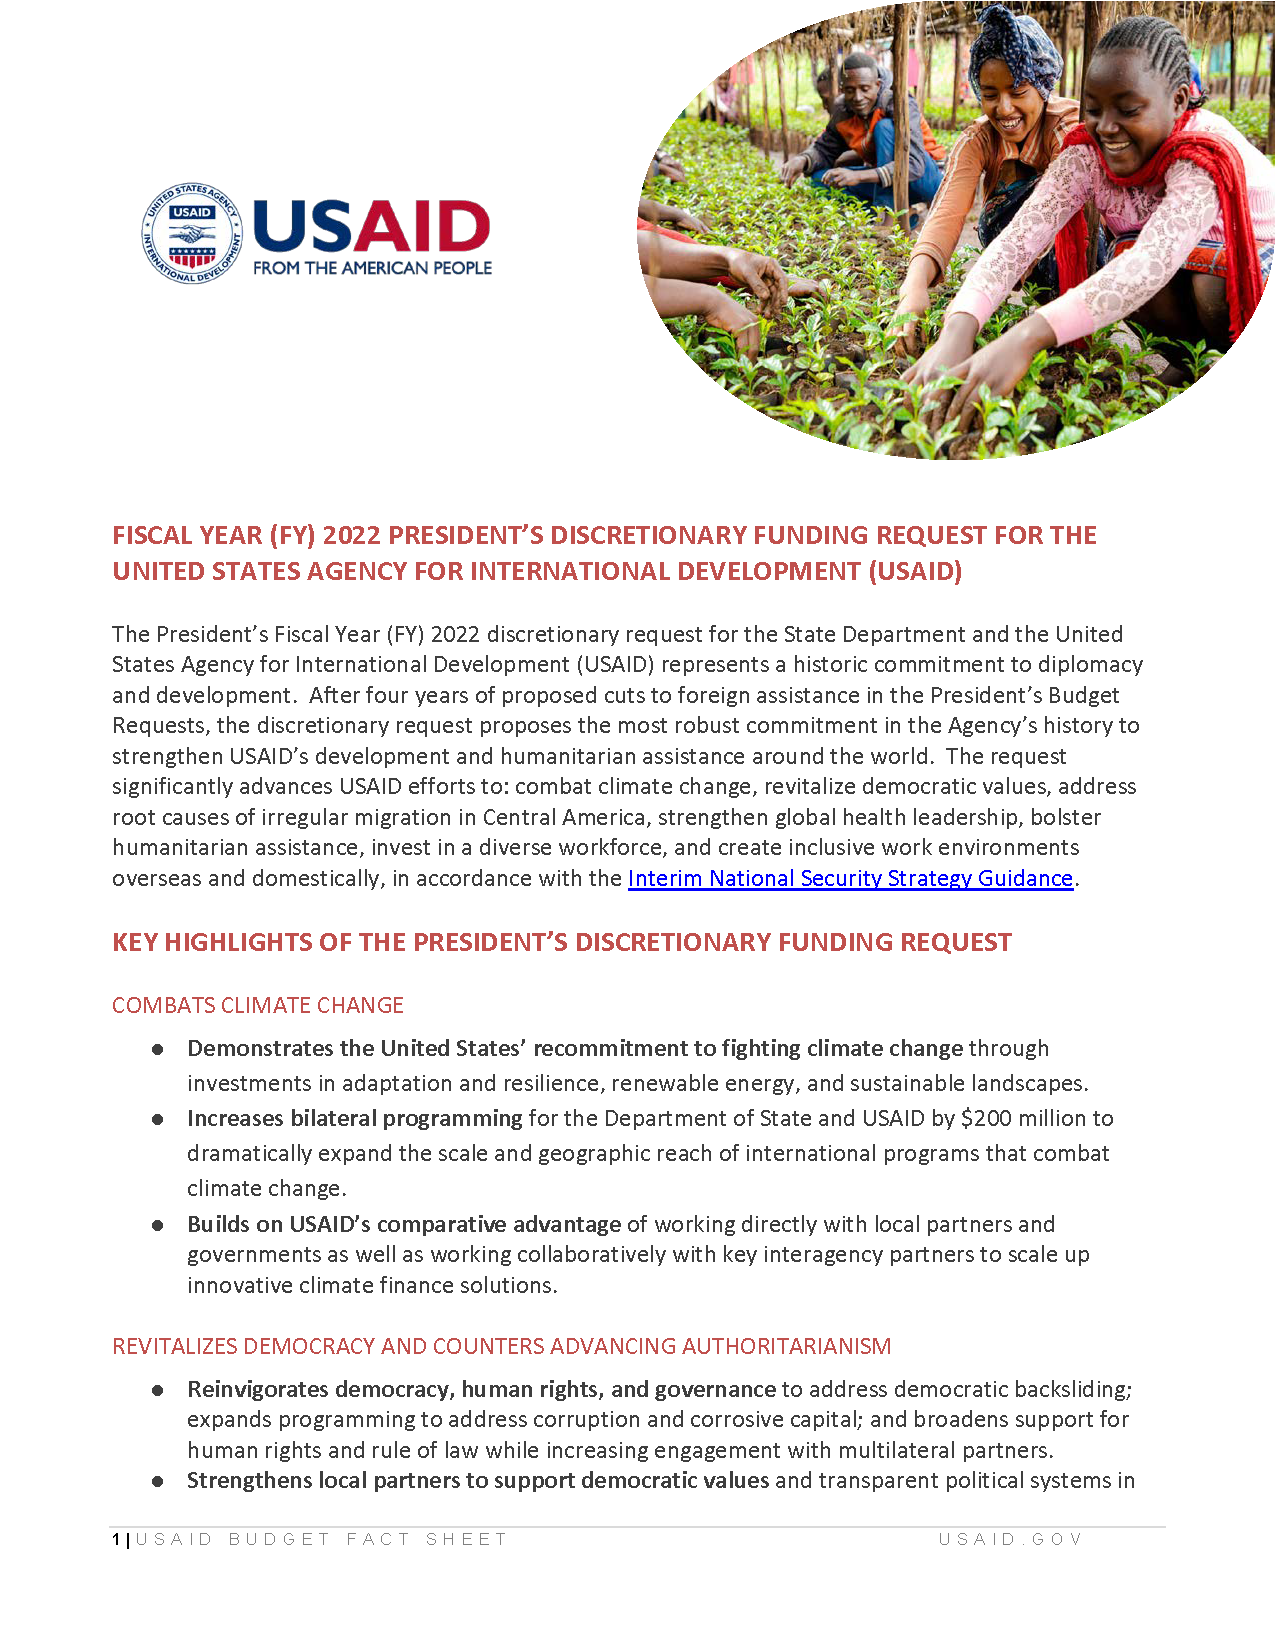 Fiscal Year 2022 President's Discretionary Funding Request for the United States Agency for International Development (USAID)